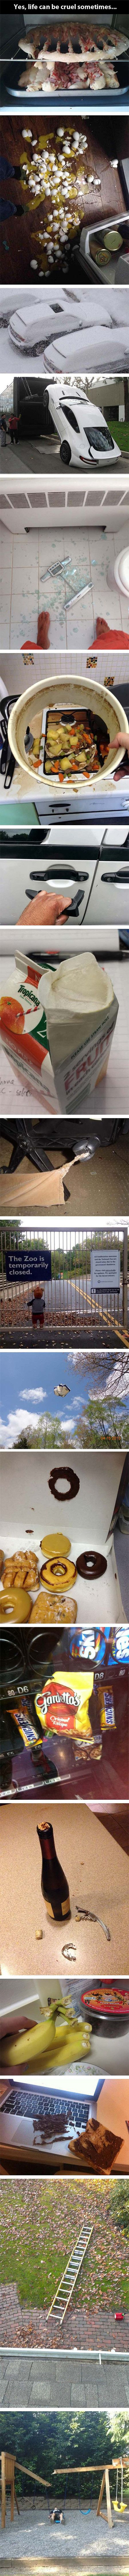 If you thought YOU were having a hard day... That last picture. I'm dying.: Giggle, The Zoo, My Life, Funny Stuff, Thought, Bad Day